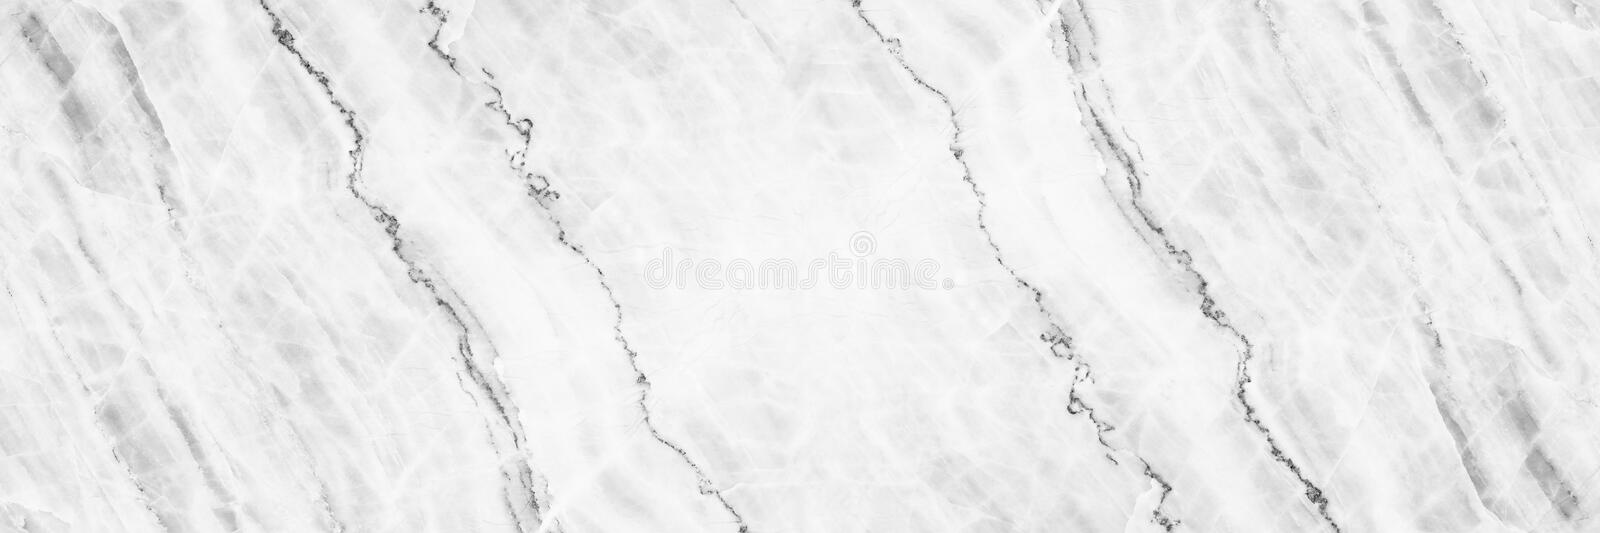 horizontal elegant white marble texture for pattern and backgrou stock images